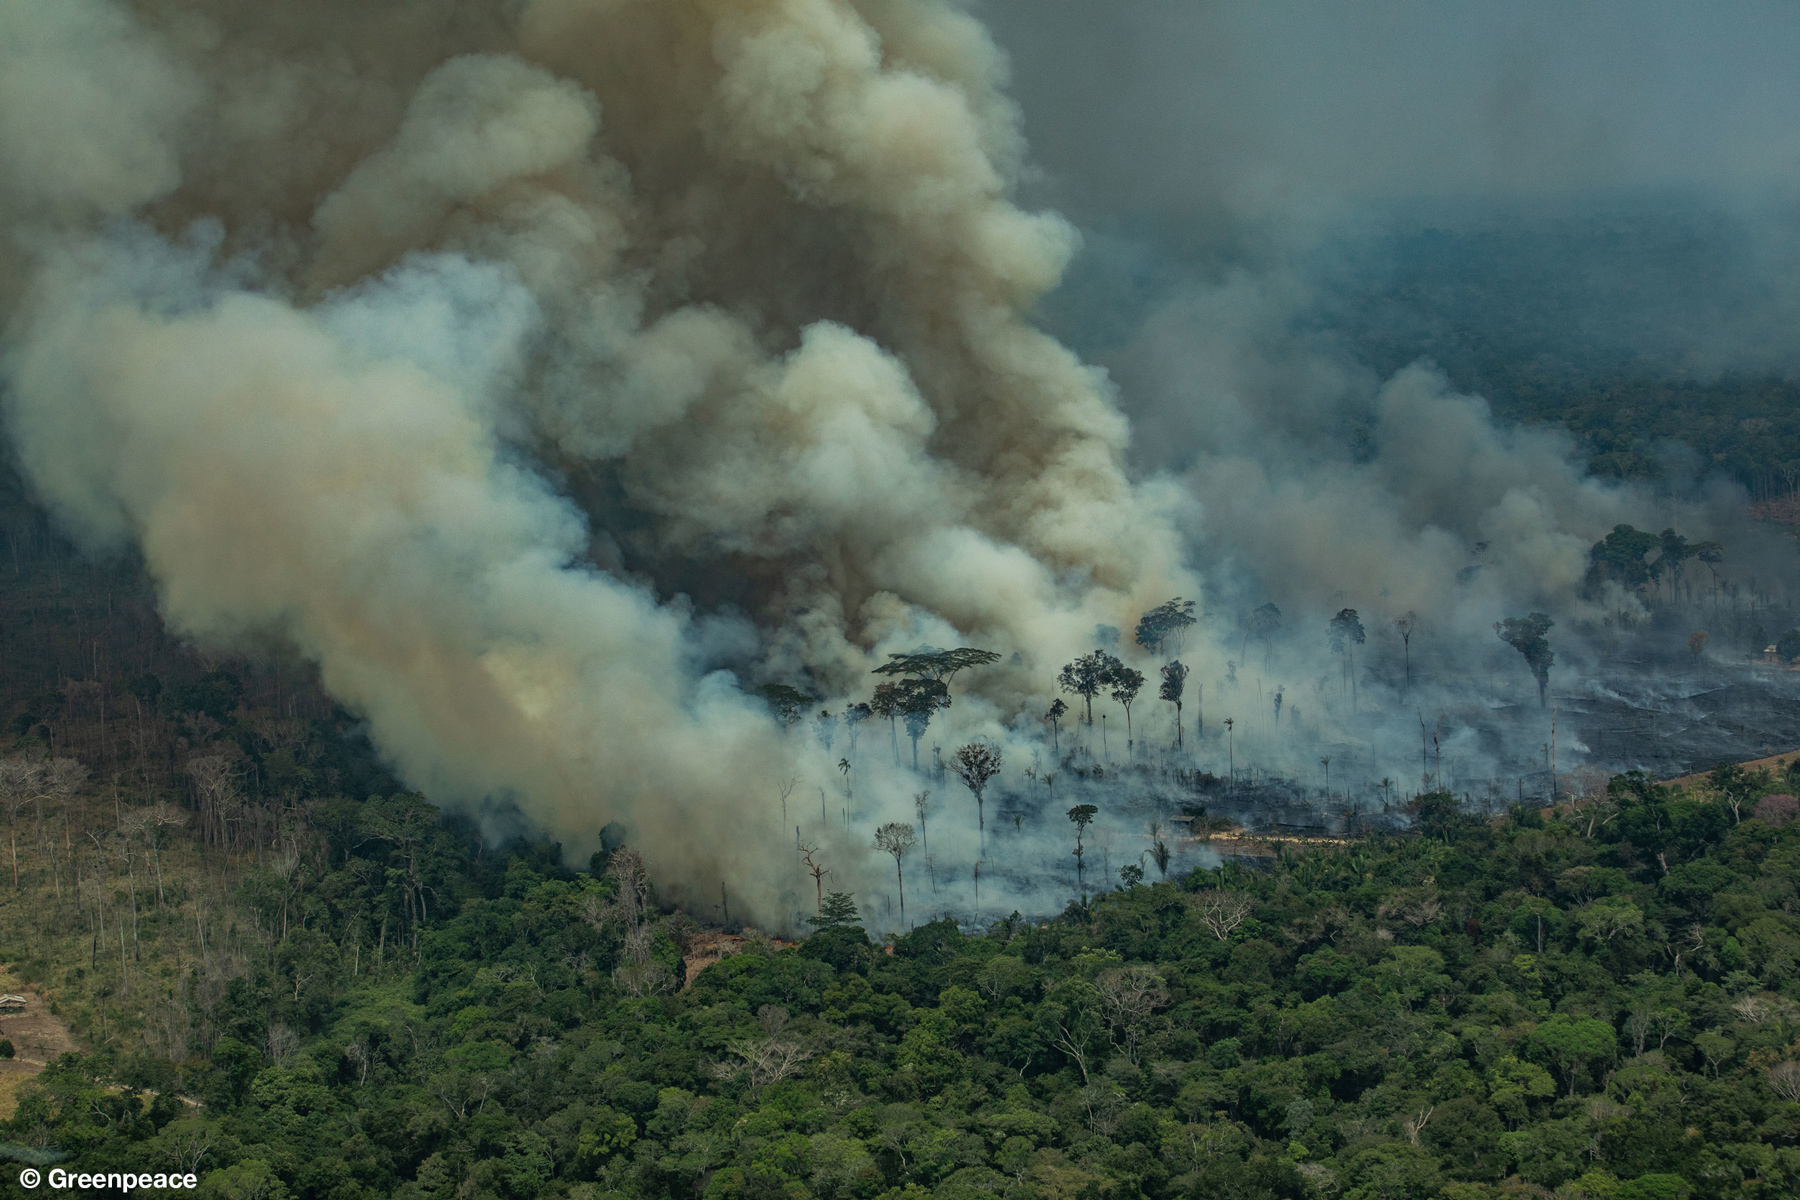 CANDEIRAS DO JAMARI, RONDÔNIA, BRAZIL: Aerial view of a large burned area in the city of Candeiras do Jamari in the state of Rondônia. (Photo: Victor Moriyama / Greenpeace)